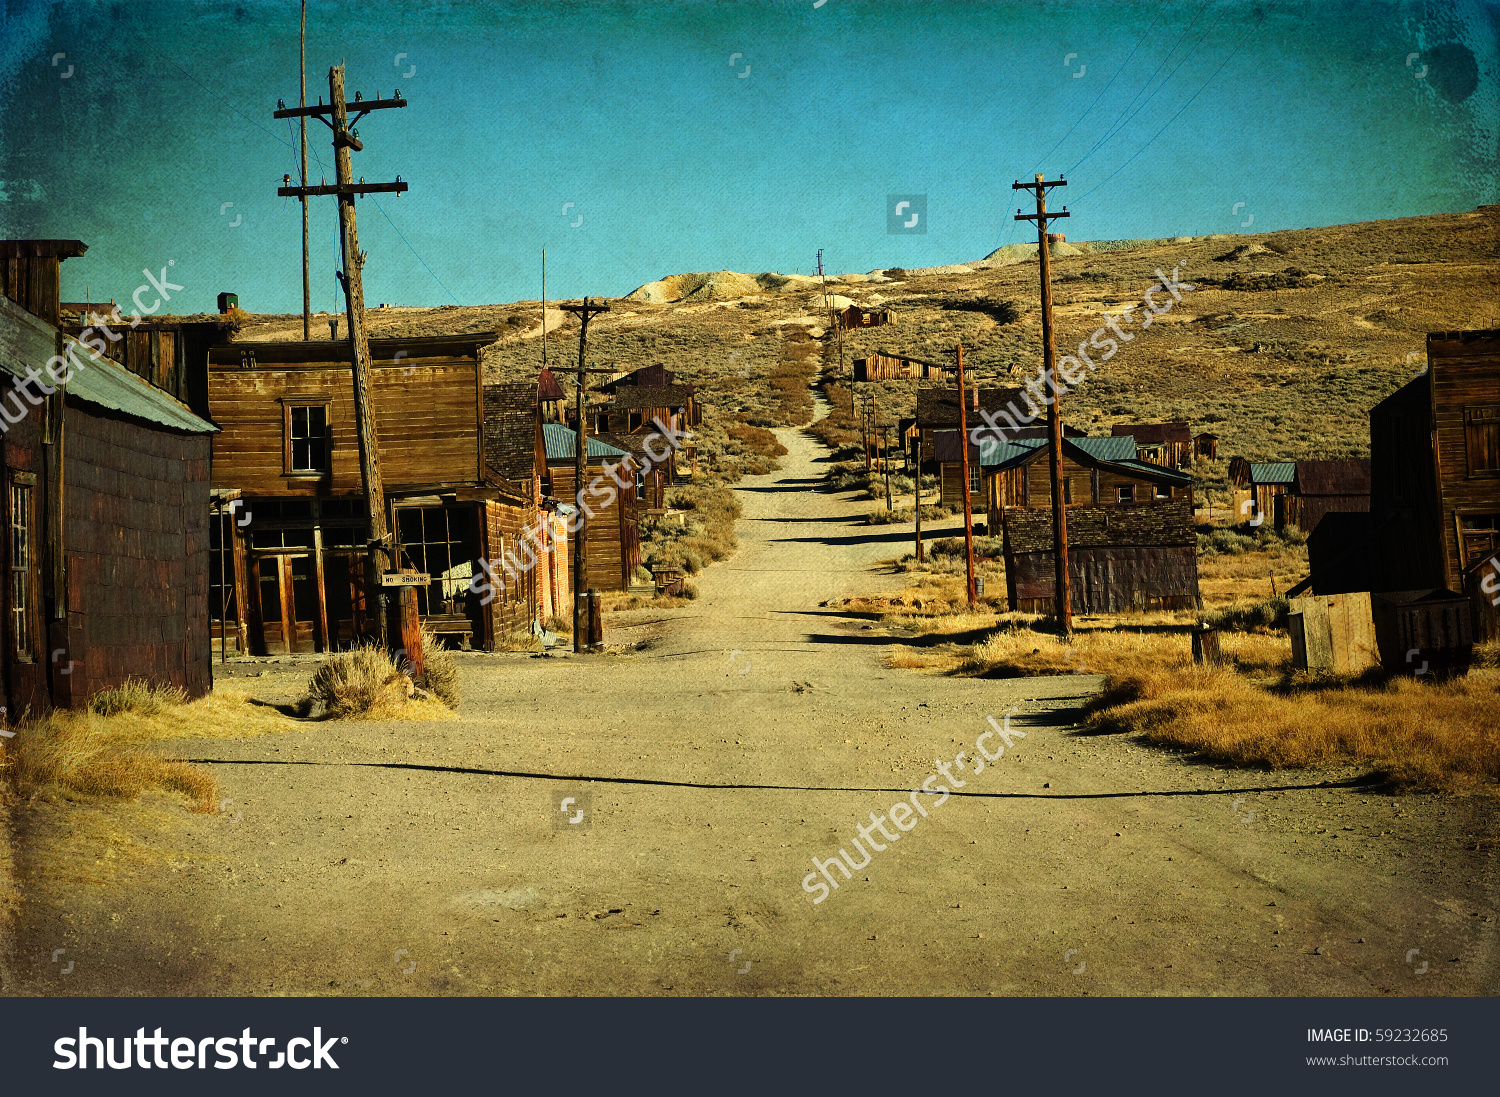 Wild West Ghost Gold Town Grunge Stock Photo 59232685.